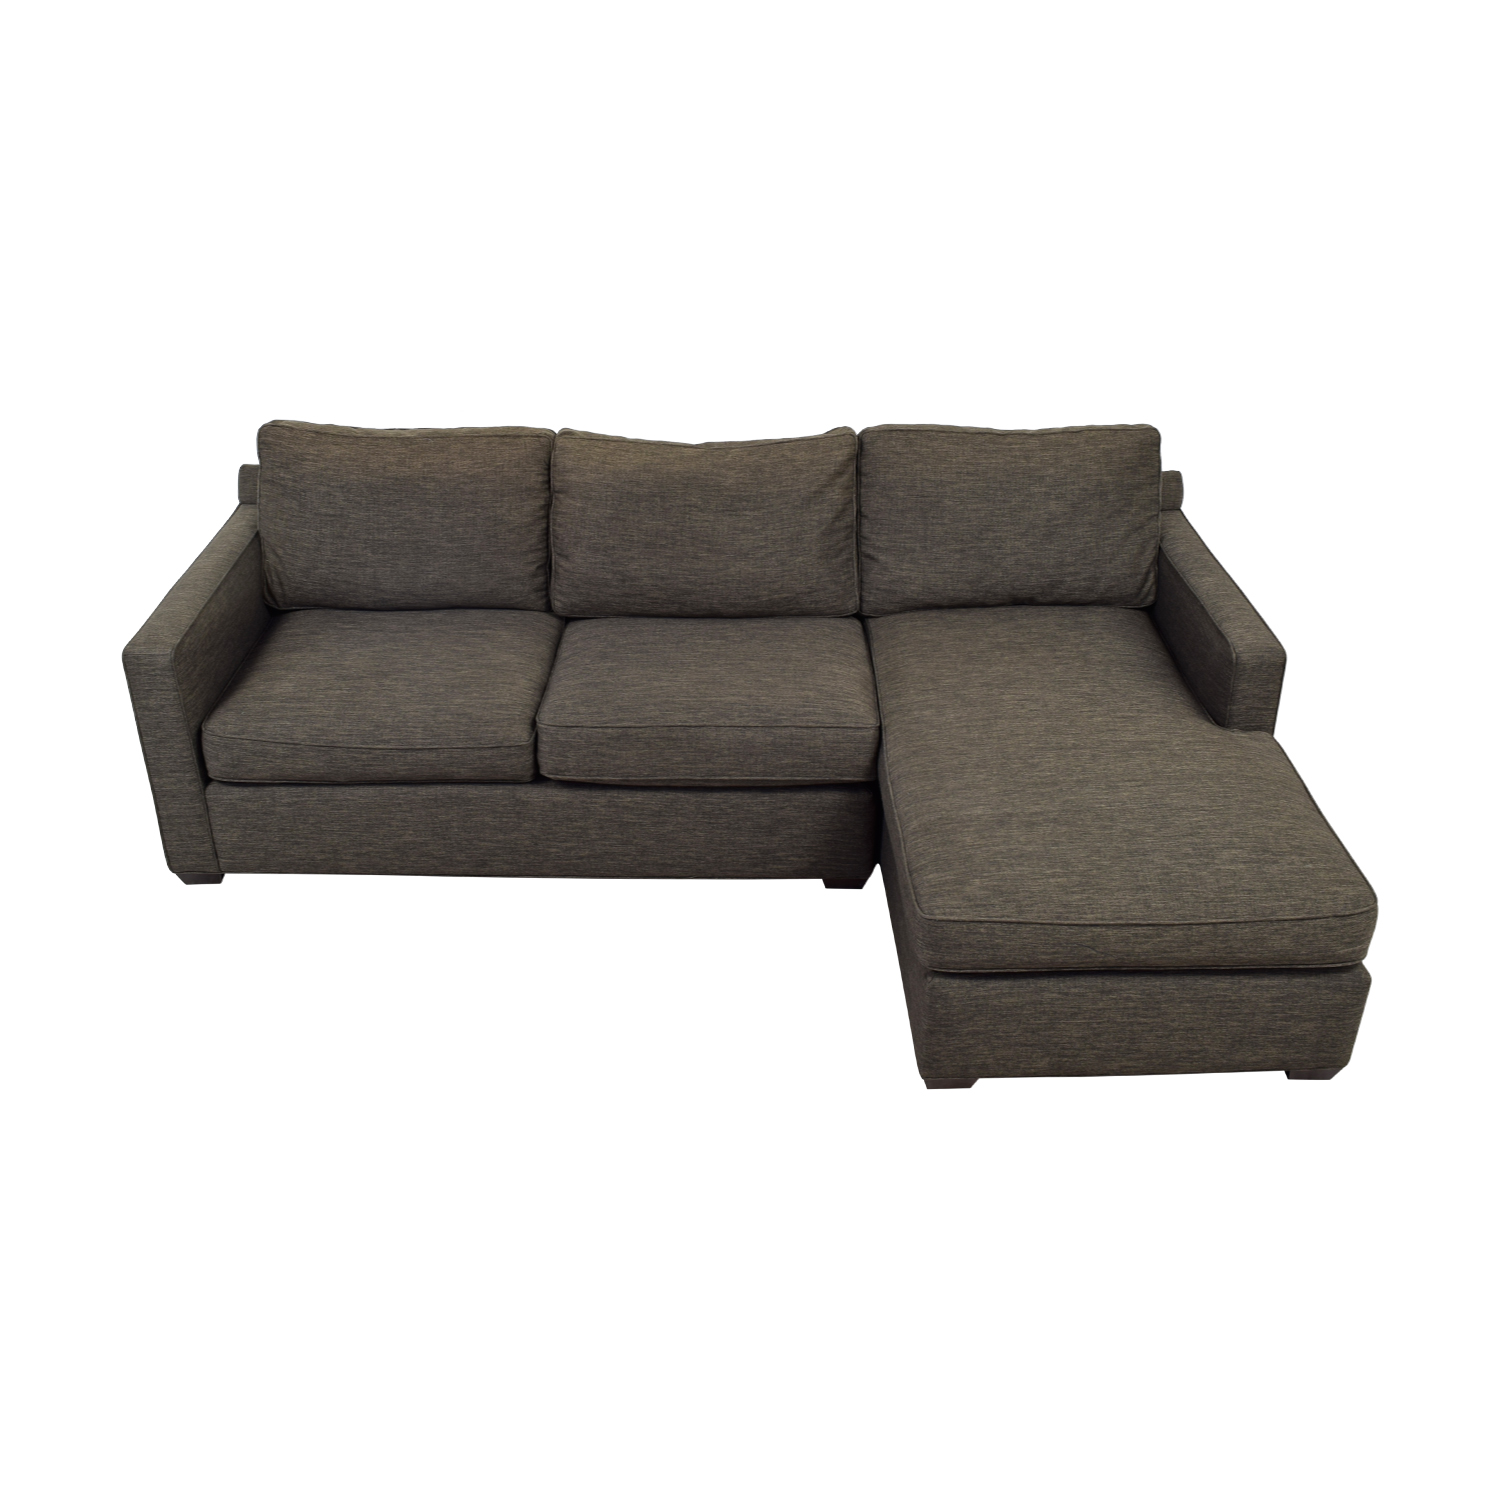 shop Crate & Barrel Davis Three Seat Lounger Sectional Sofa Crate & Barrel Sofas